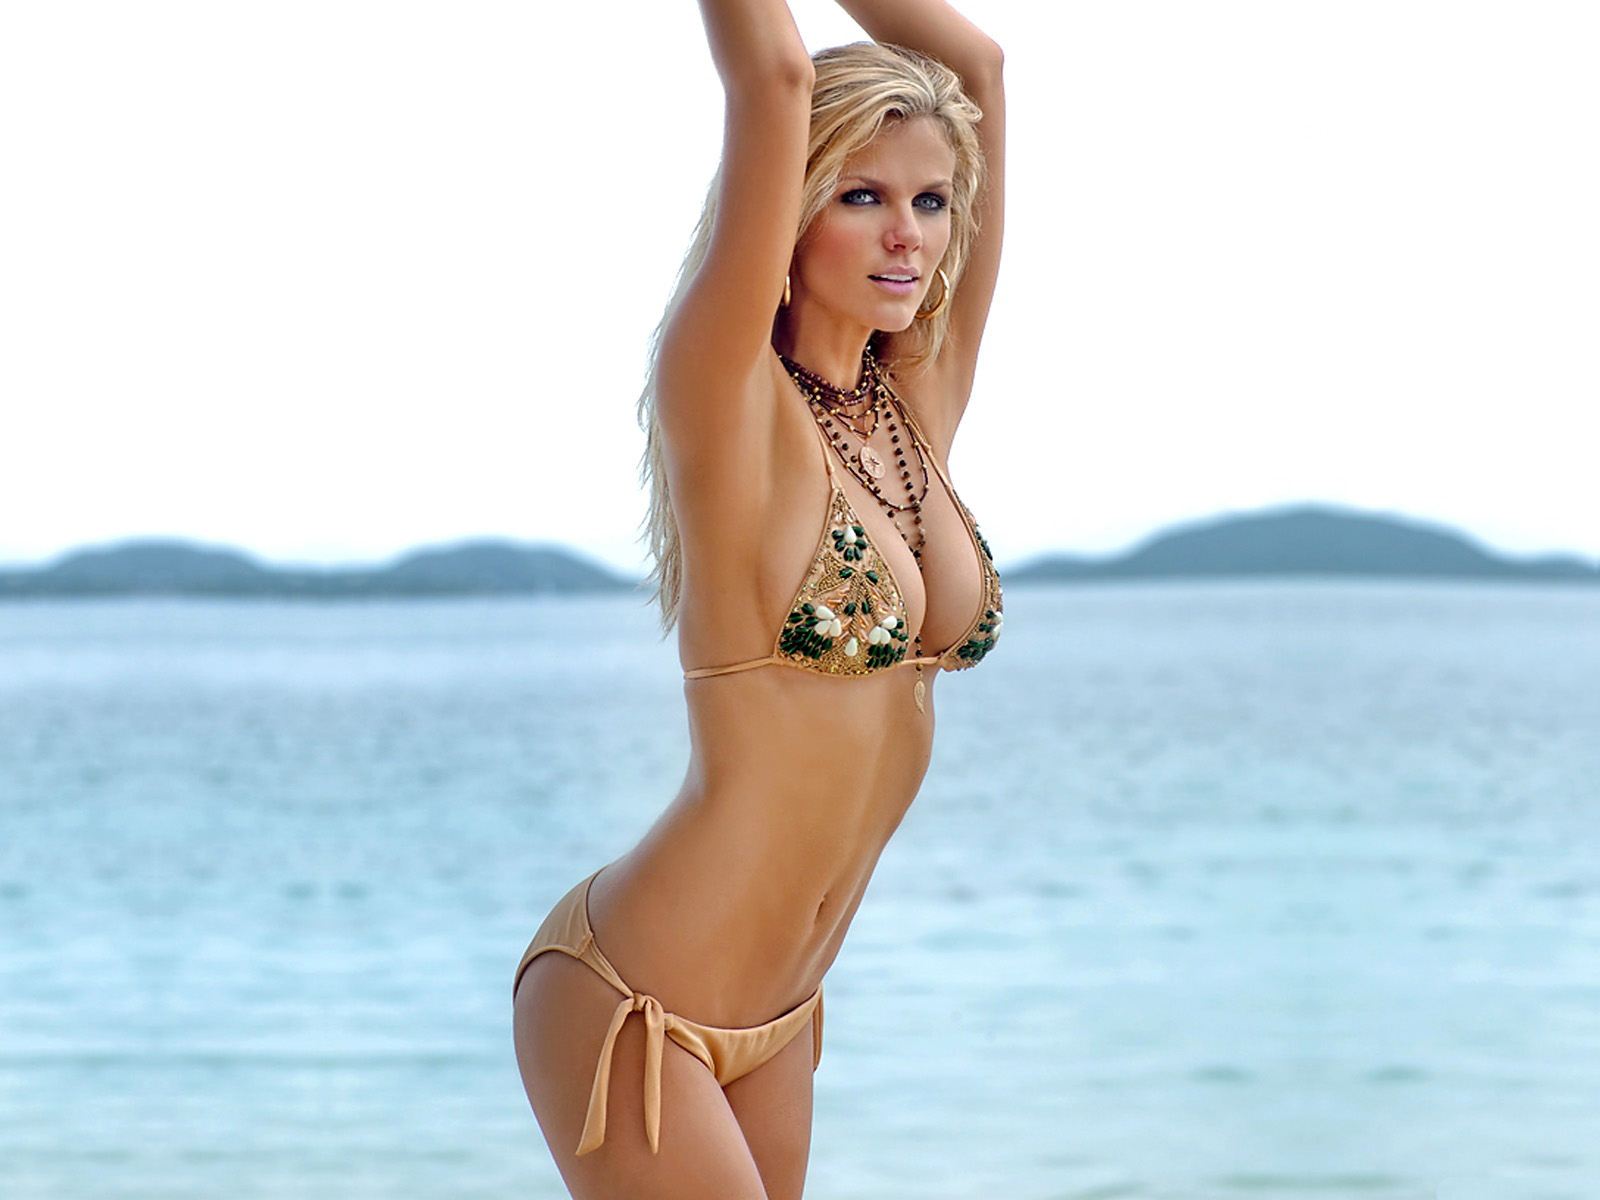 http://2.bp.blogspot.com/-DOCN6oV8KEo/UHrXpy1Ek9I/AAAAAAAAFGo/nNUzyEz8gtE/s1600/Brooklyn+Decker+hd+wallpapers+2012-2013+11.jpg